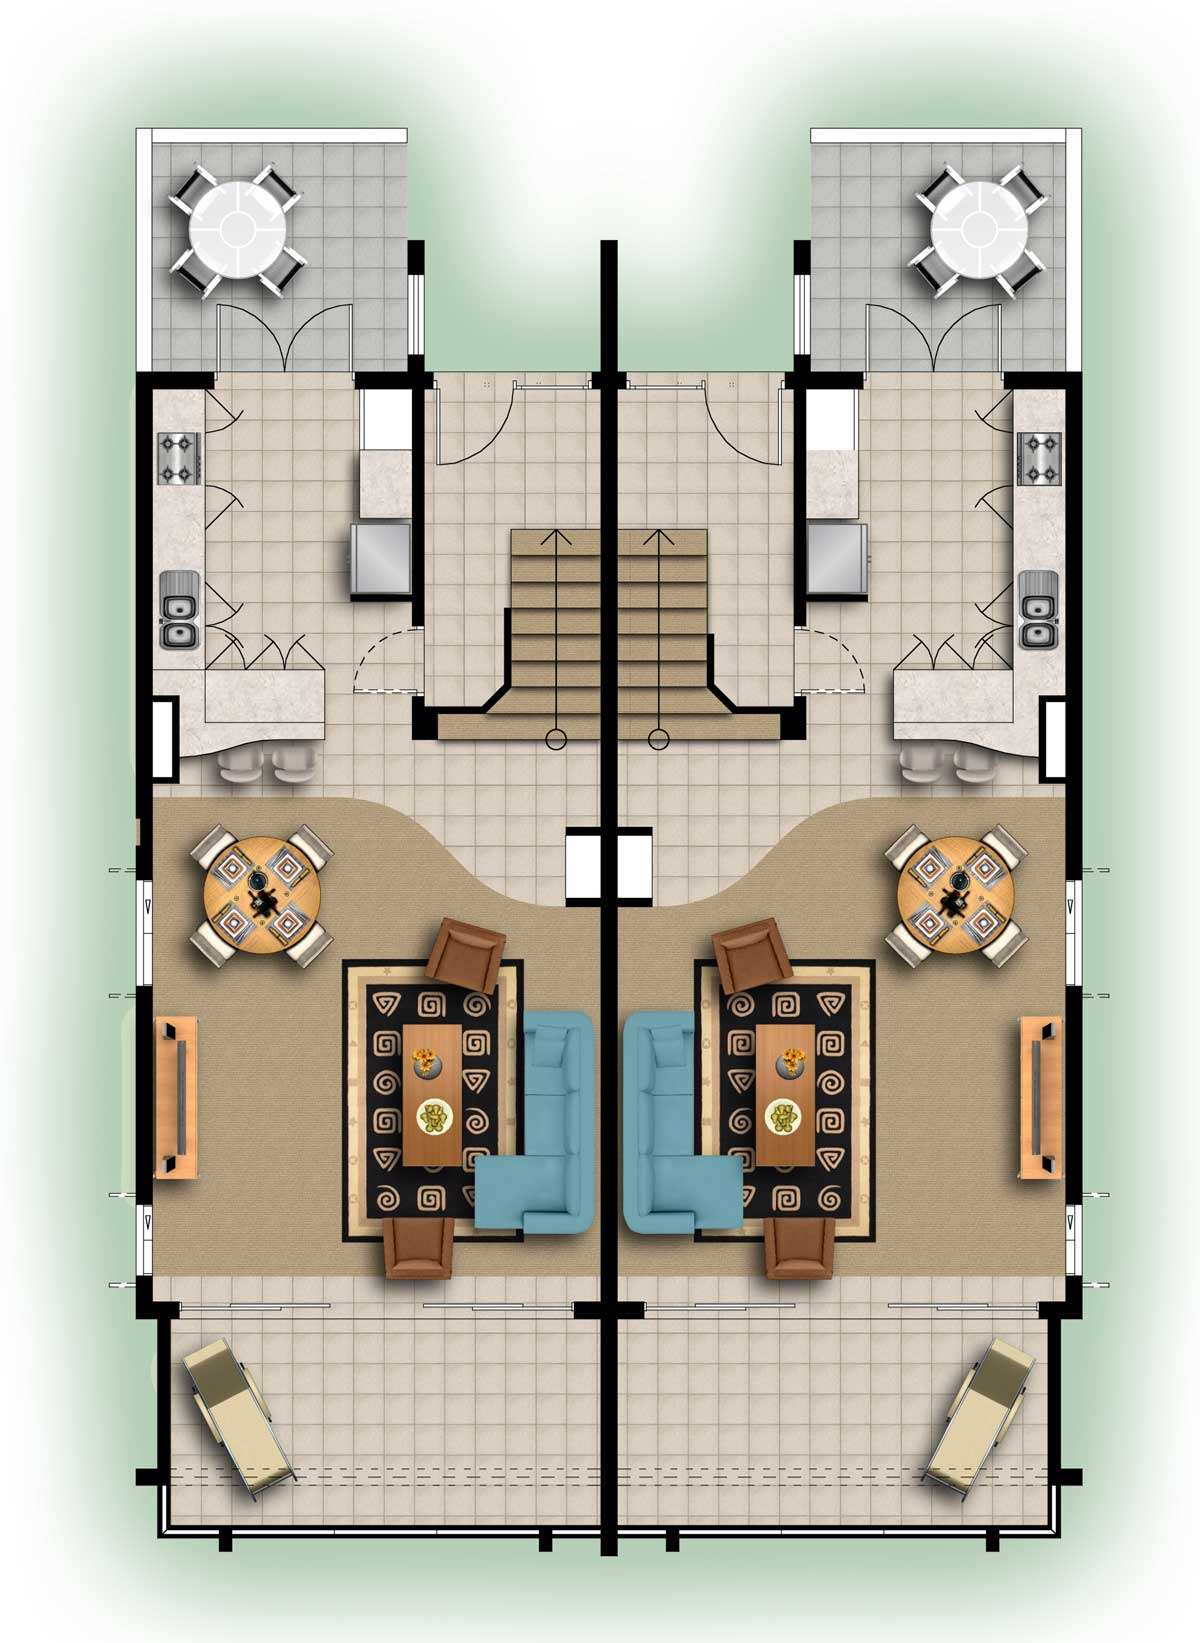 How to Design Floor Plans for House Inspirational Interior Plan Drawing Floor Plans Line Free Amusing Draw